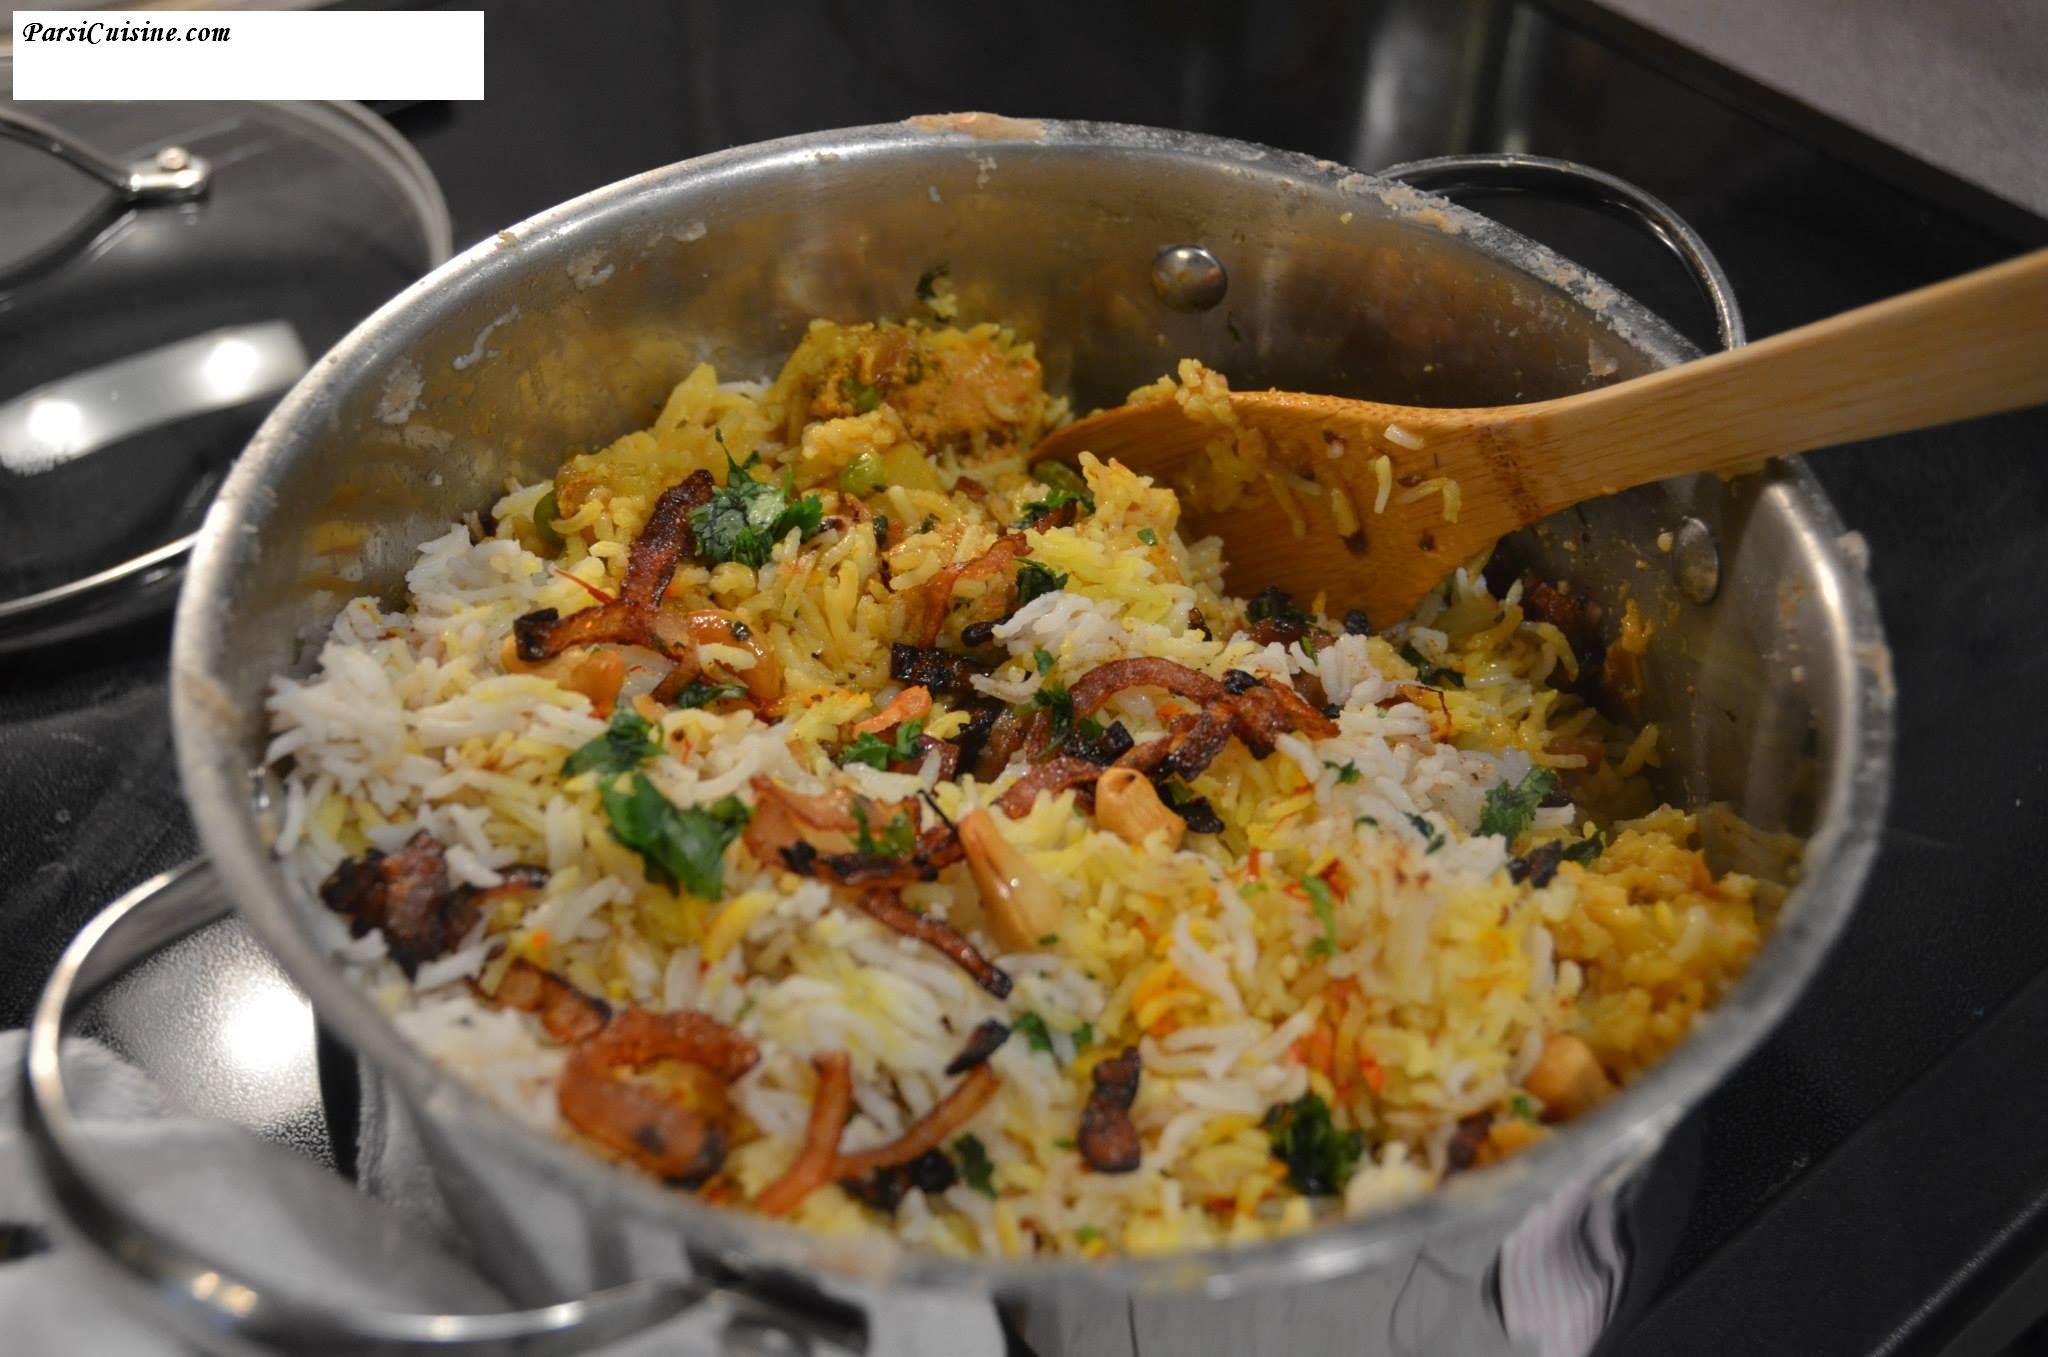 Chicken/Mutton Biryani